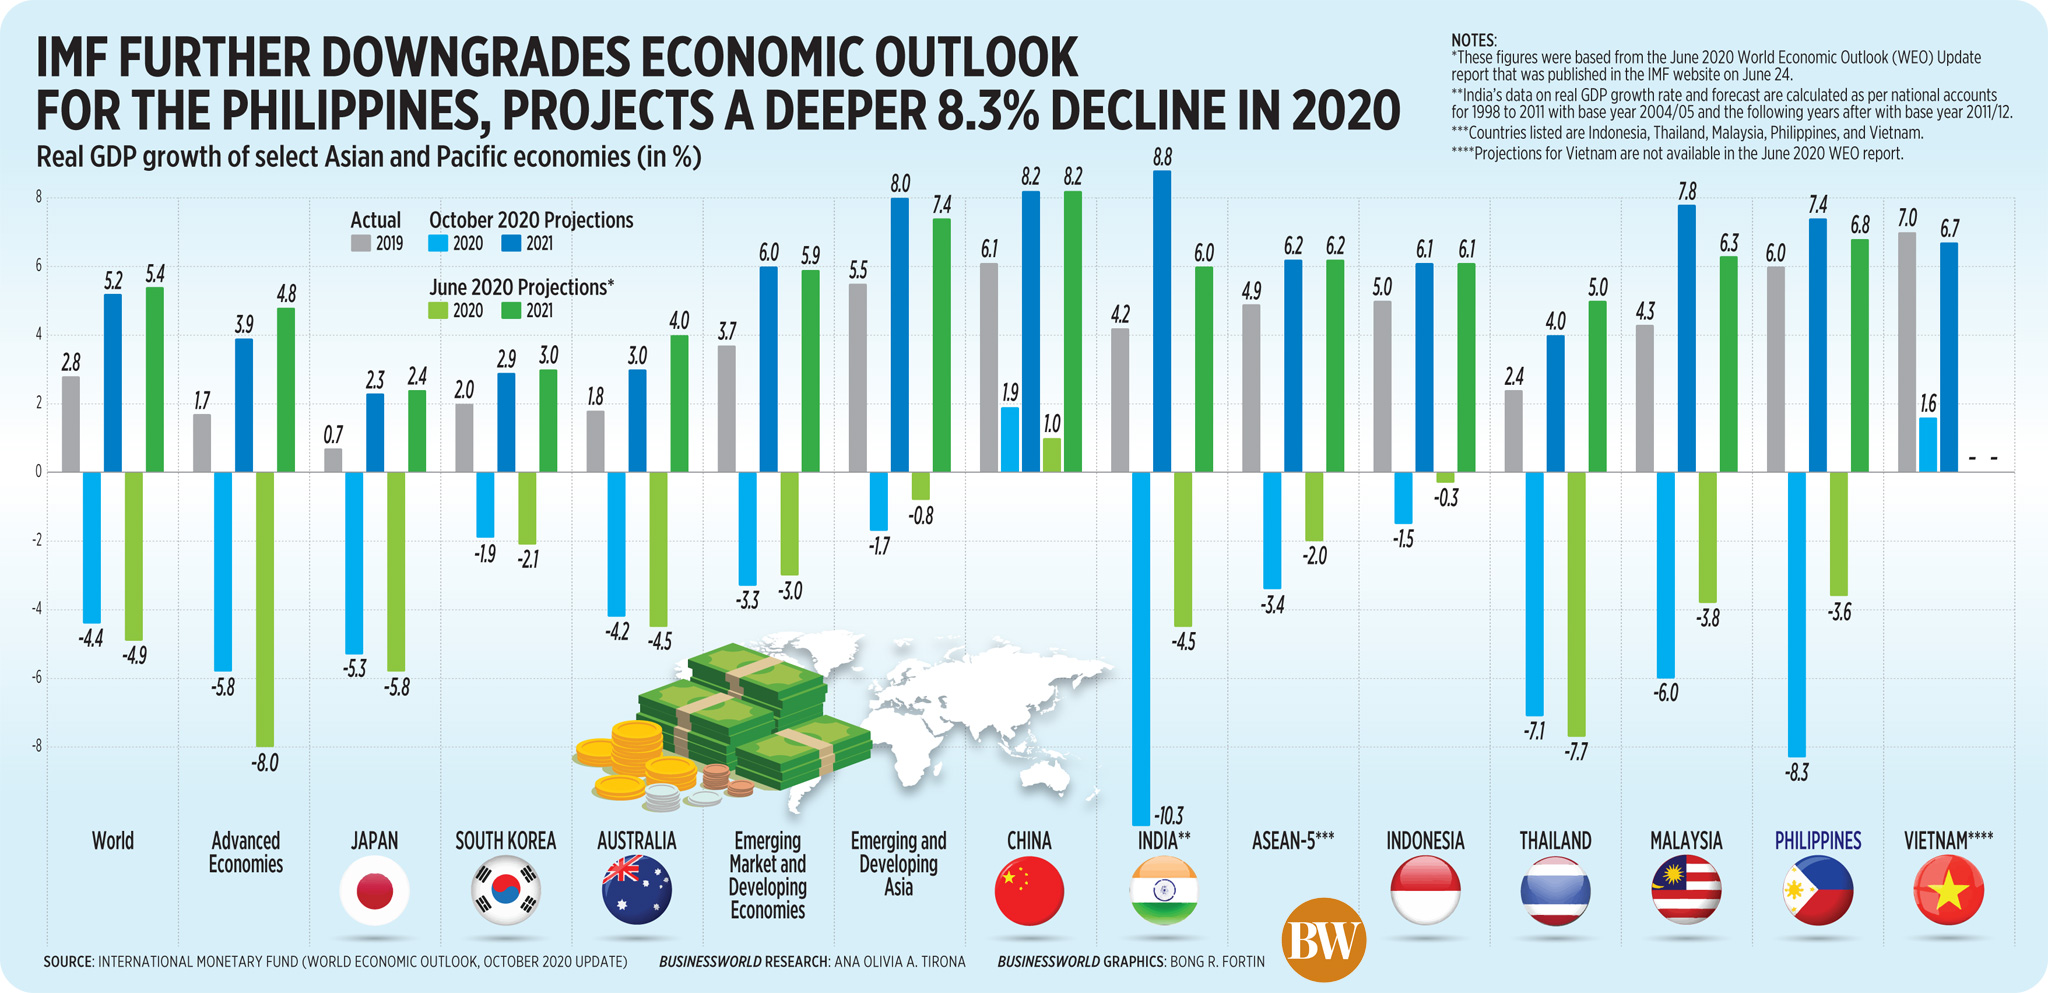 IMF further downgrades economic outlook for the Philippines, projects a deeper 8.3% decline in 2020